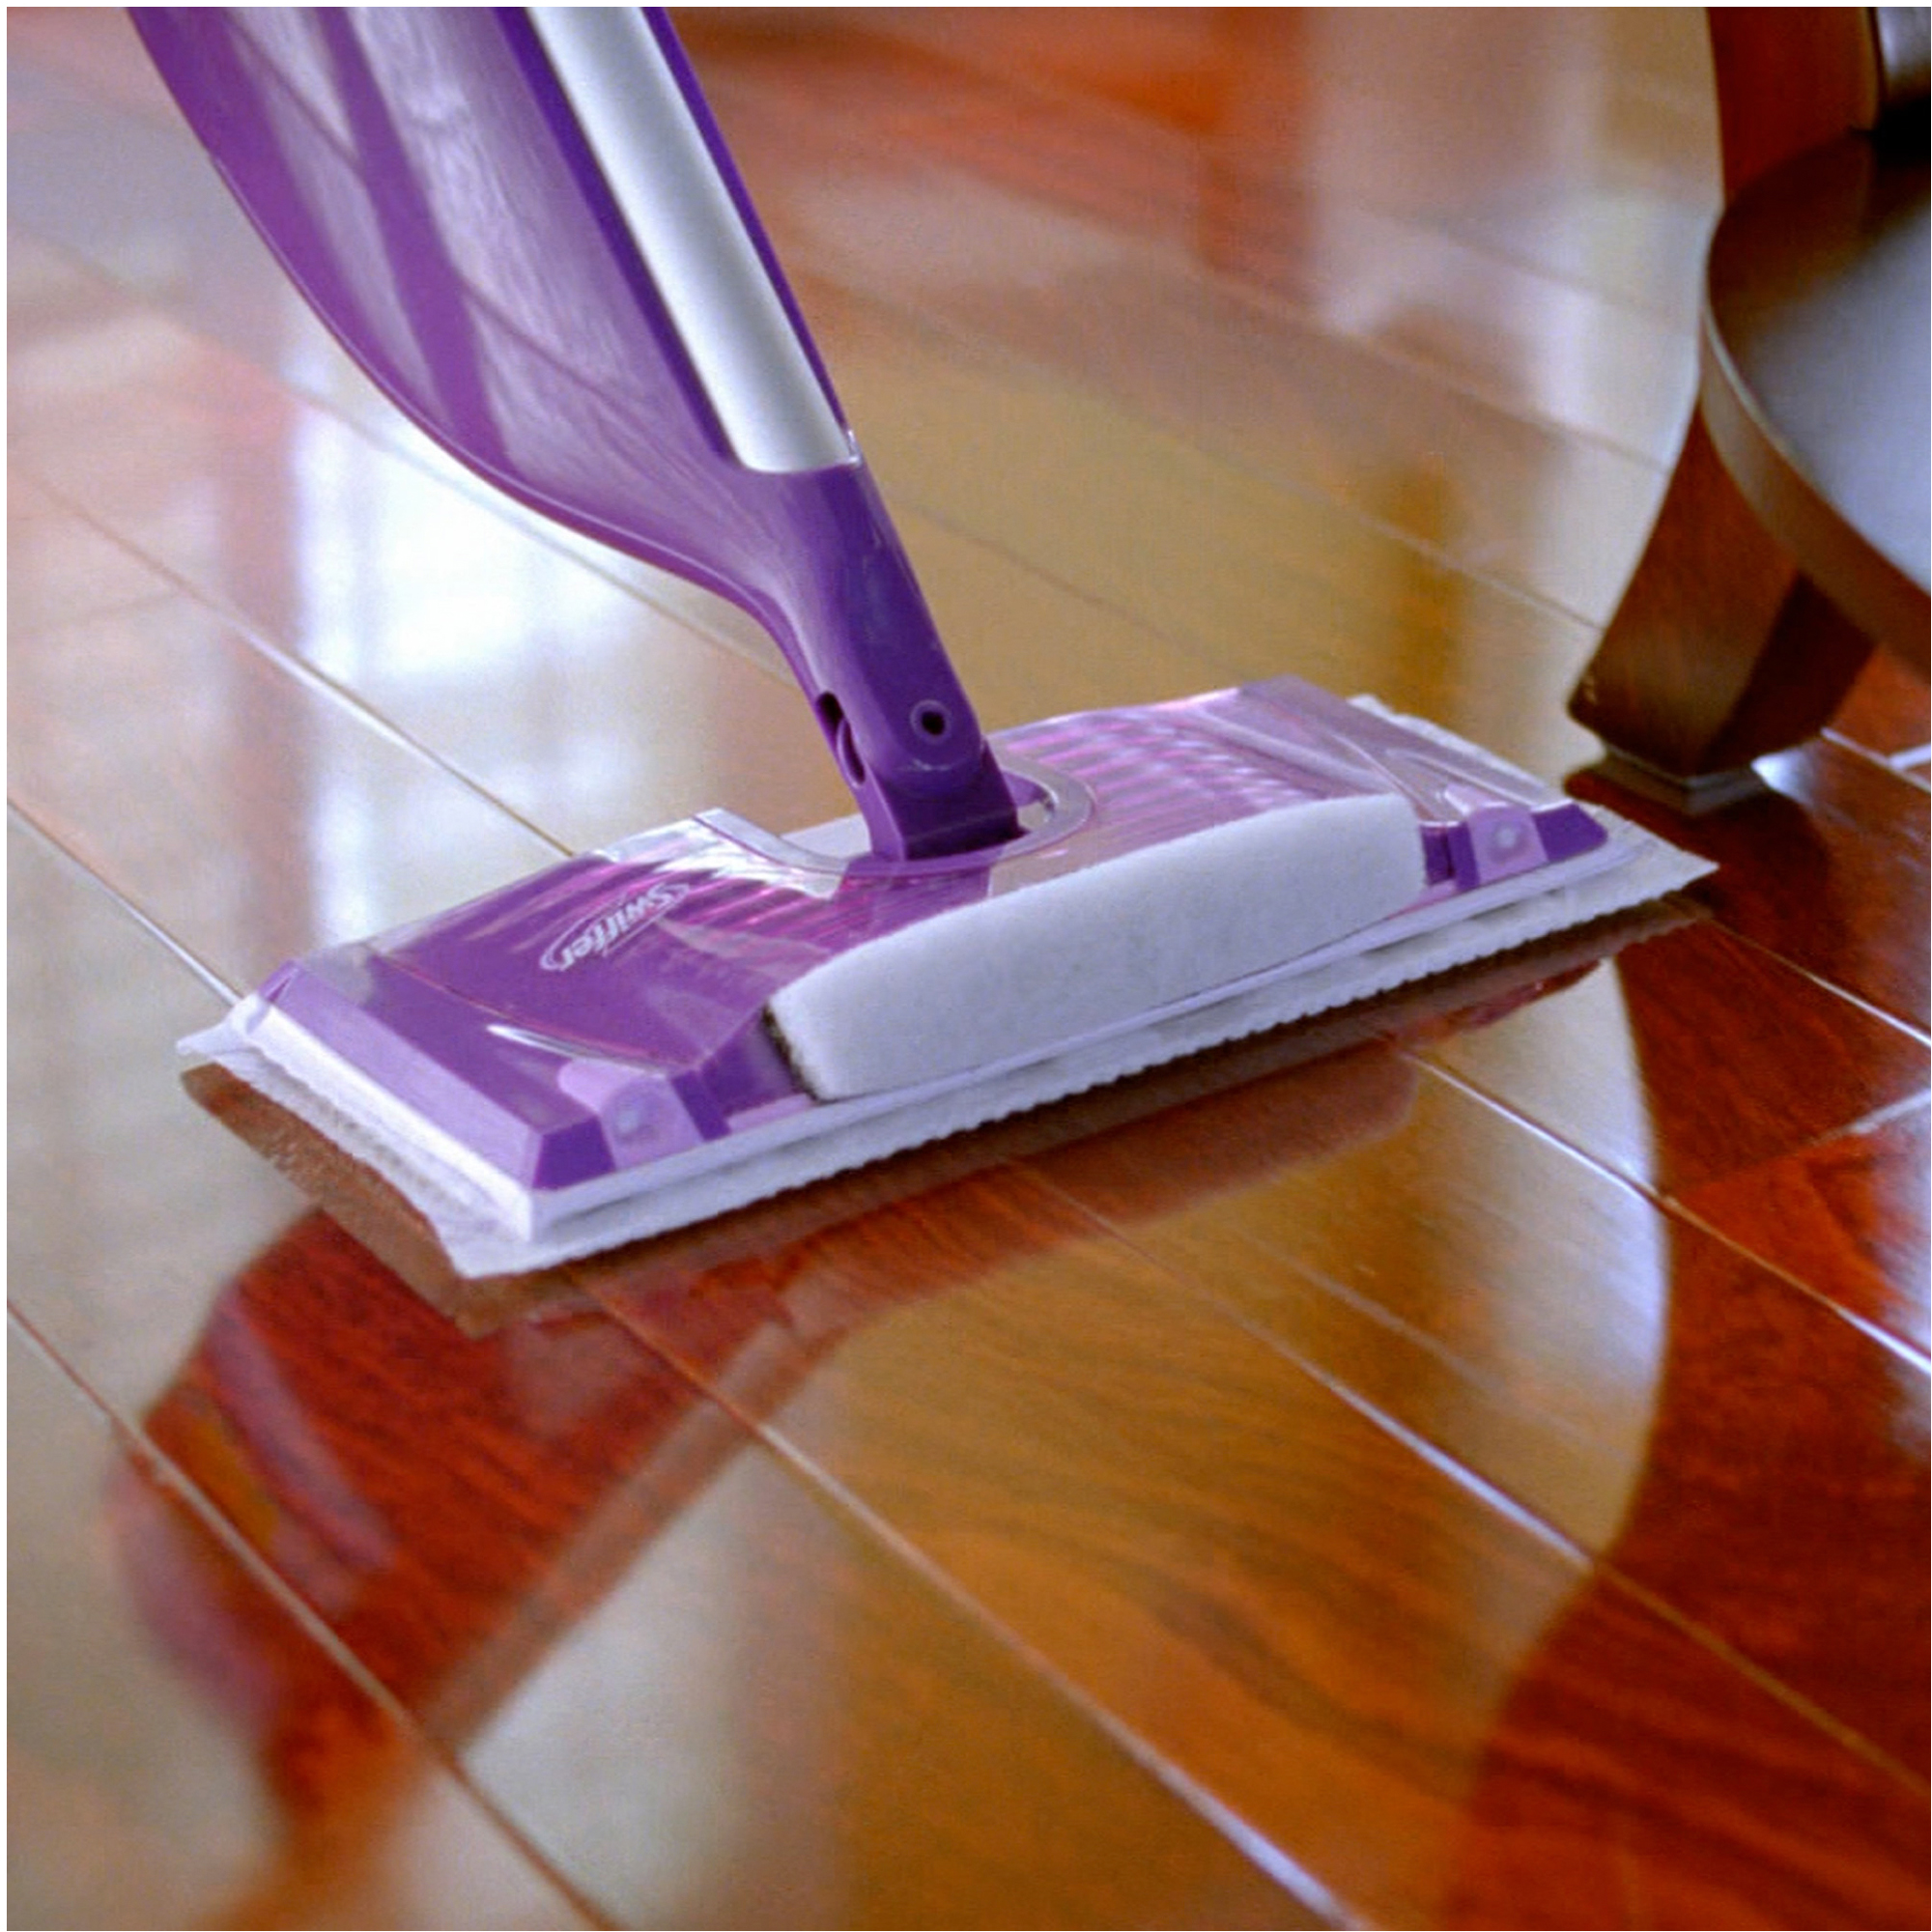 of floors hands laminate on flooring man laying floor s picture static polish prevent yellow